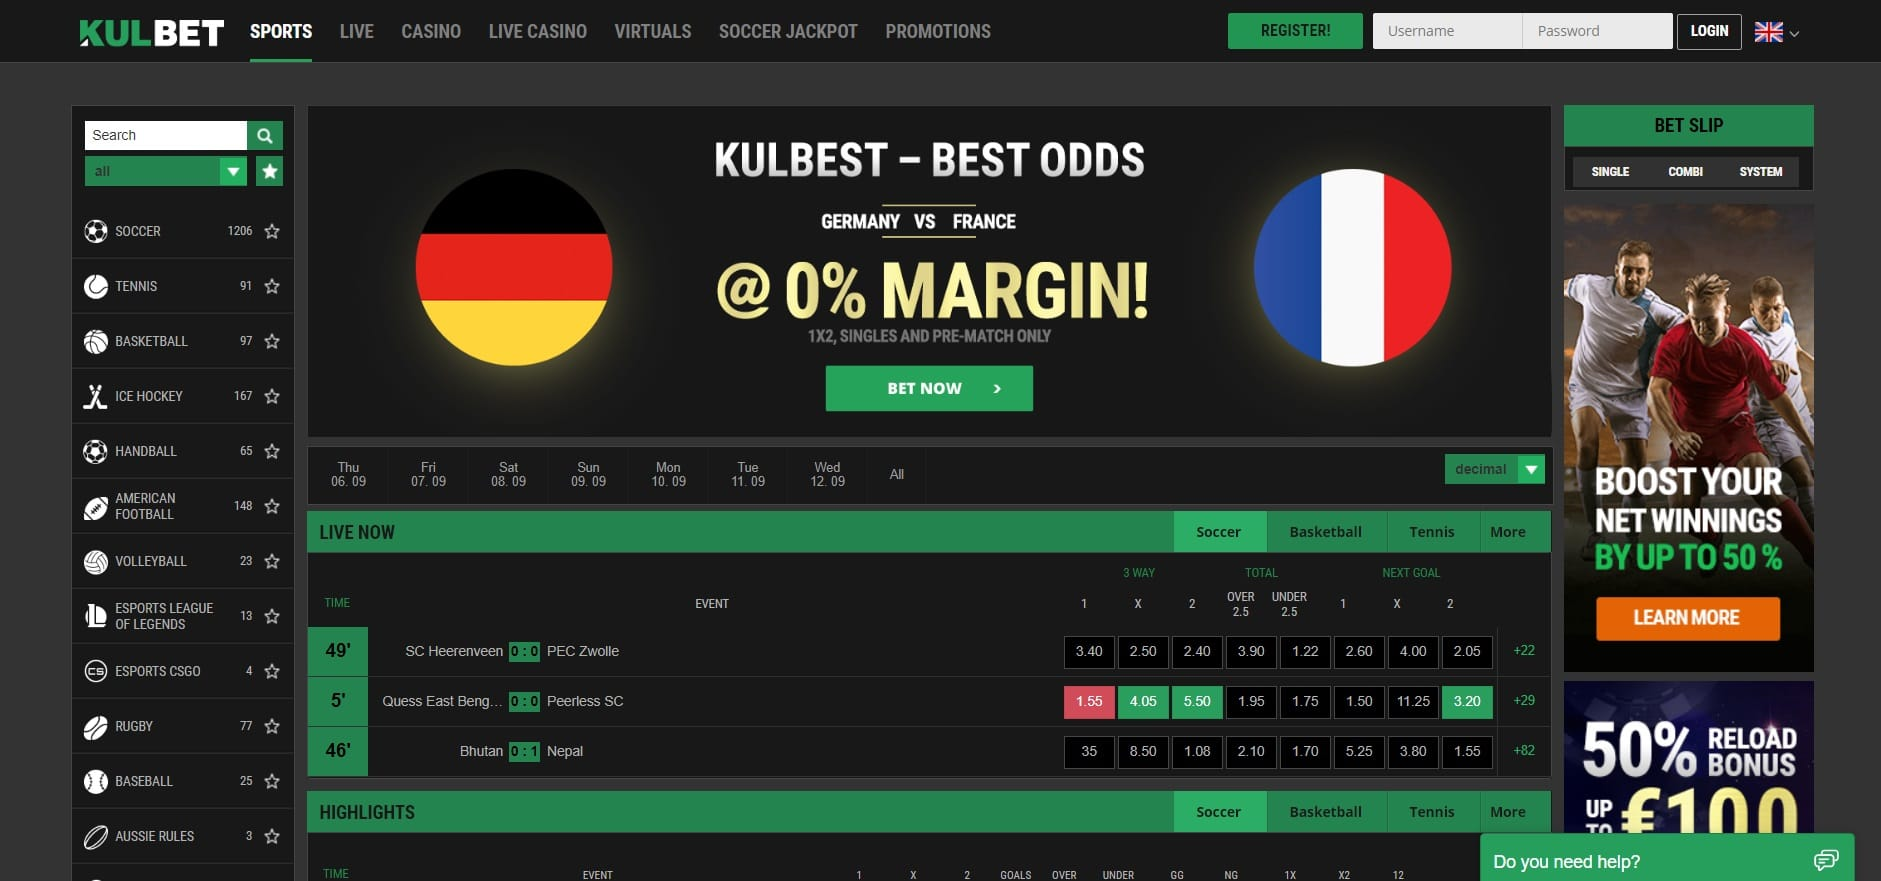 Bookies with Best Football Odds: KULBET – 0% MARGIN